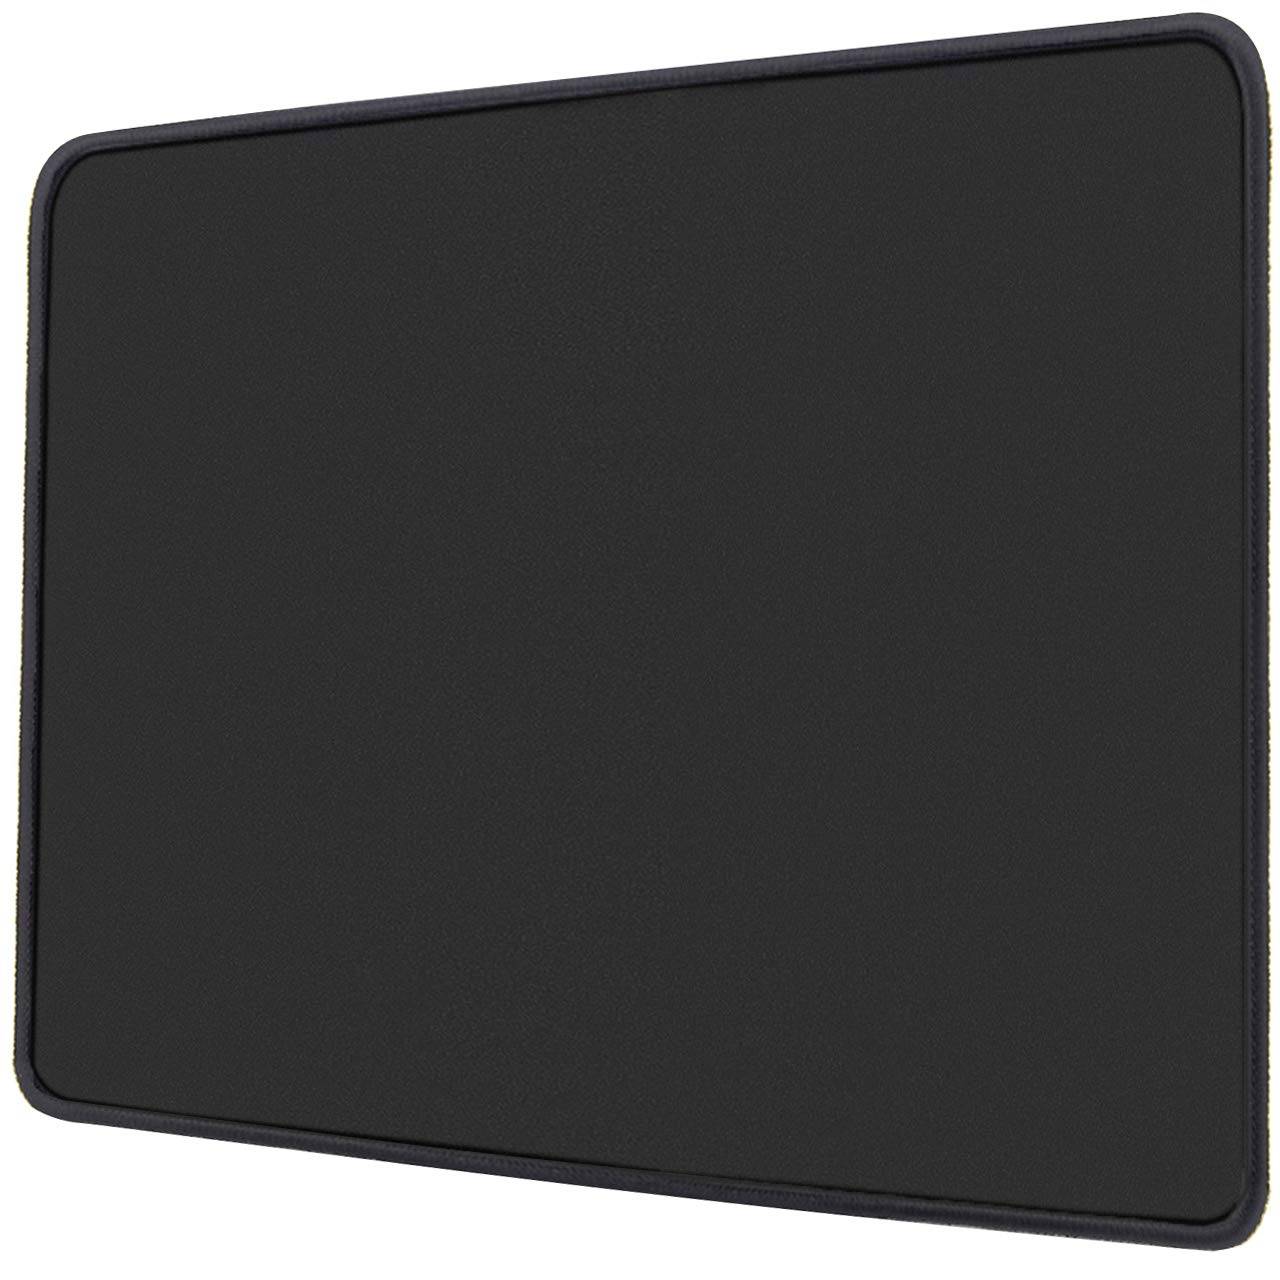 """Ktrio Gaming Mouse Pad with Stitched Edges Mousepad with Lycra Cloth, Non-Slip Rubber Base, Waterproof Coating Mouse Pad for Computer, Laptop, PC, Office & Home, 11"""" x 8.5"""", 3mm, Black"""